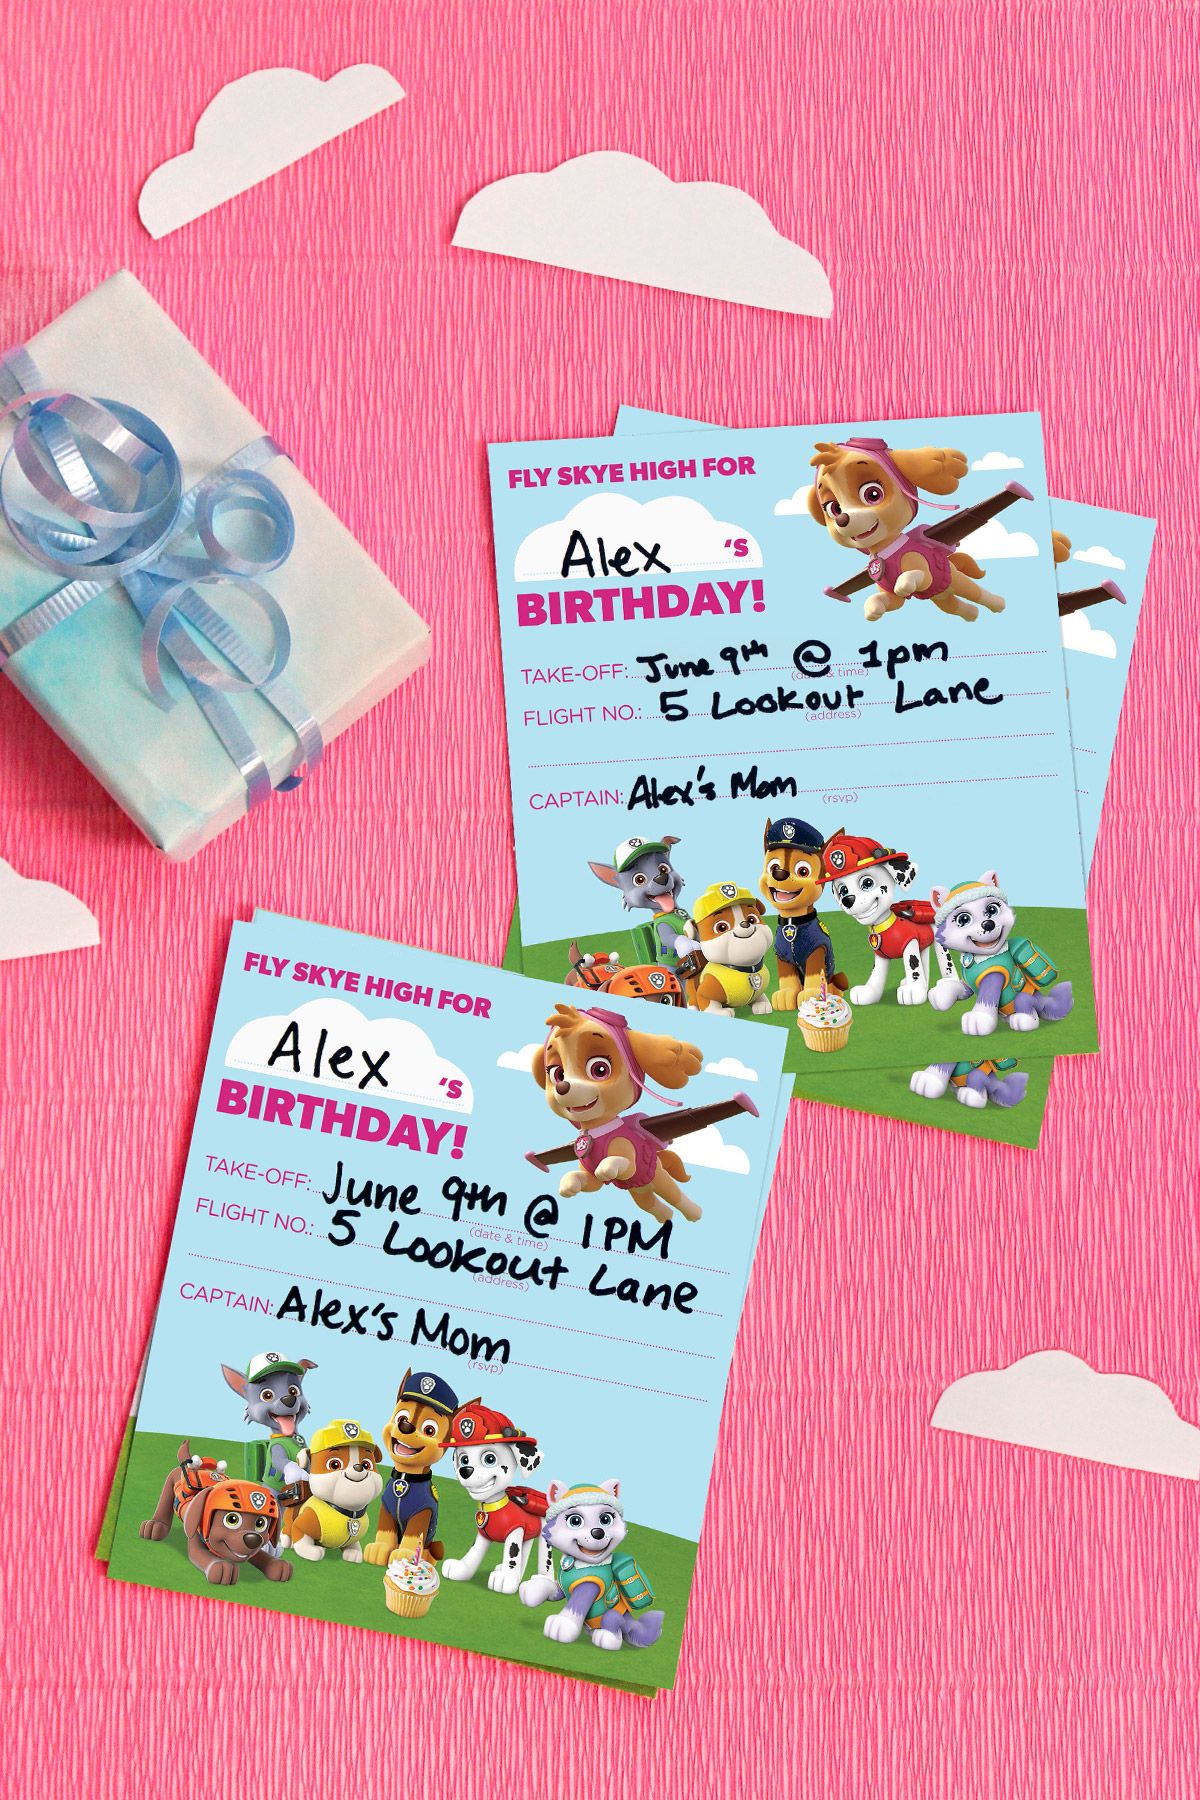 Paw patrol skye birthday party invitations nickelodeon parents savesave to pinterest paw patrol skye birthday party invitations filmwisefo